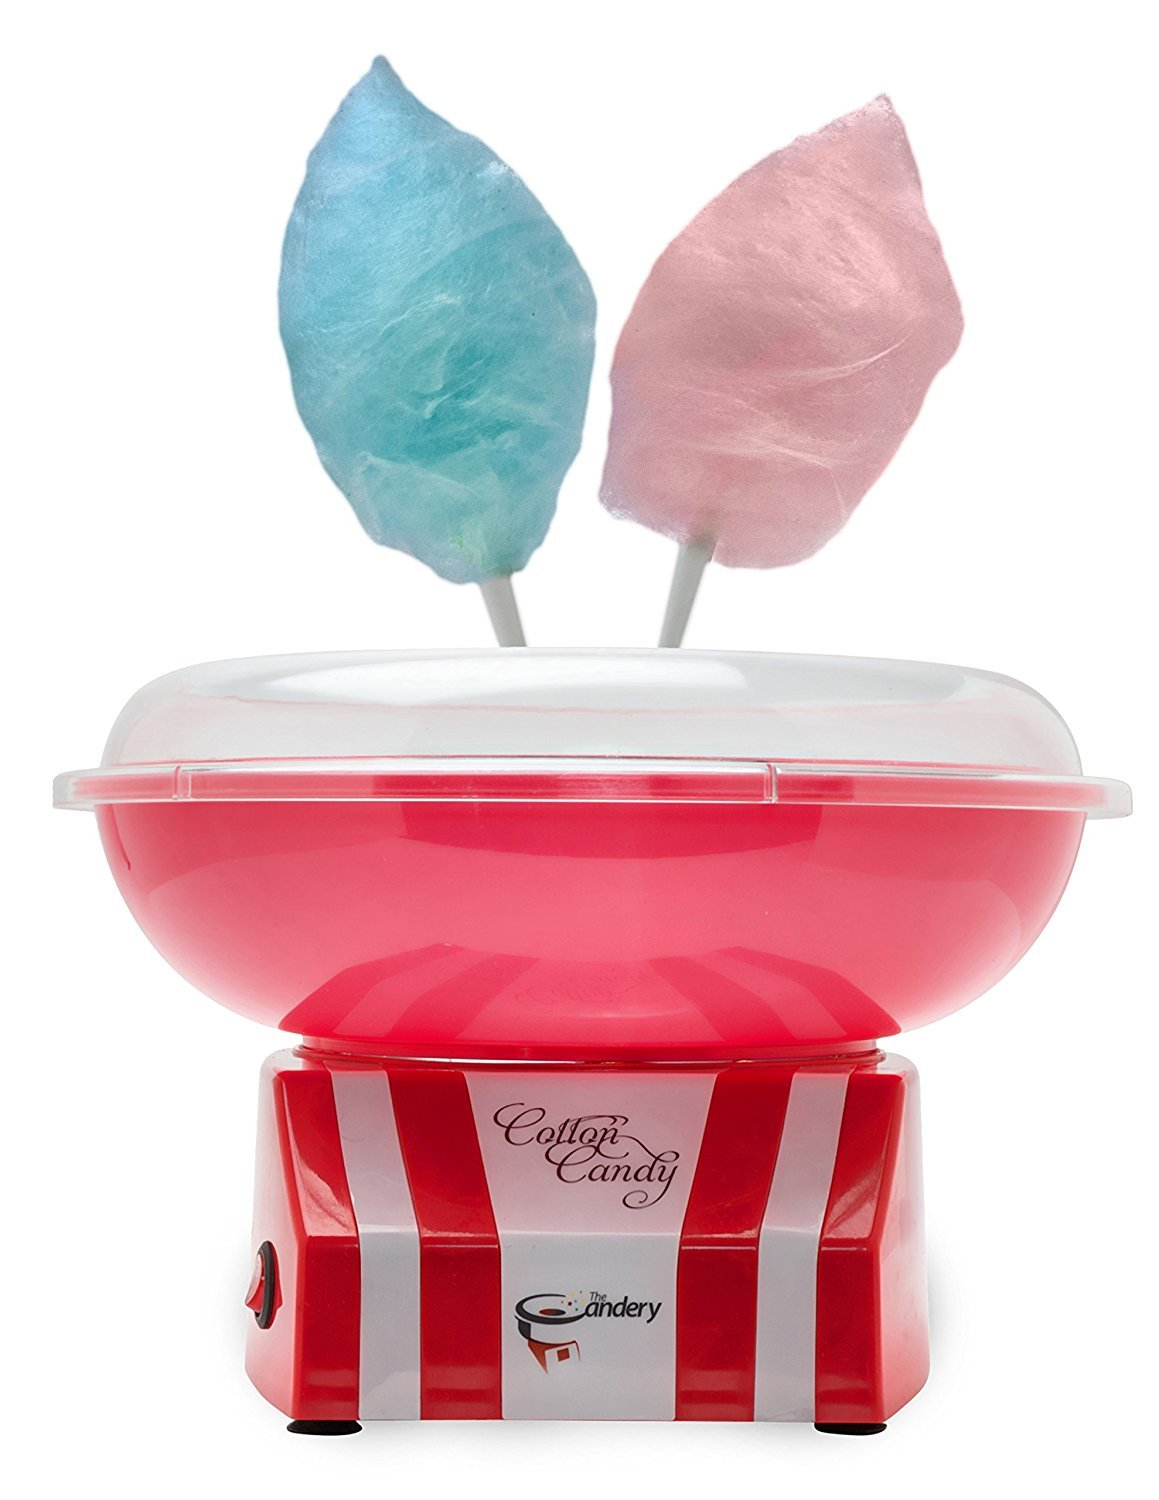 The Candery Cotton Candy Machine - Upgraded - Bright, Colorful Style- Makes Hard Candy, Sugar Free Candy, Sugar Floss, Homemade Sweets for Birthday Parties - Includes 10 Candy Cones & Scooper